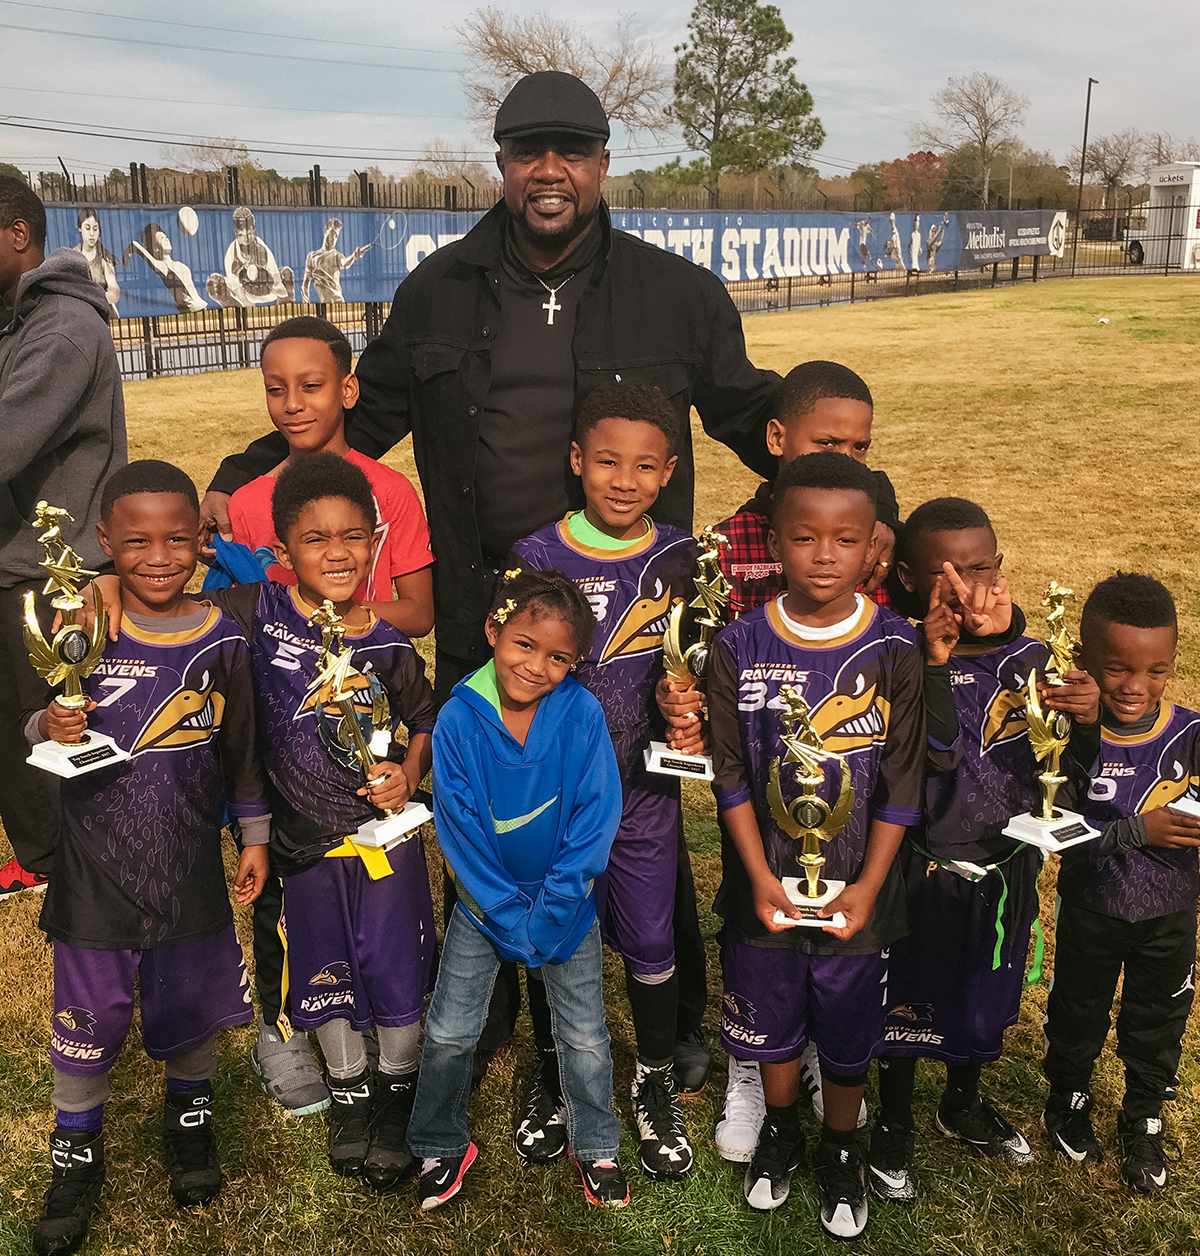 Nine boys in football jerseys hold trophies, while their coach stands behind.